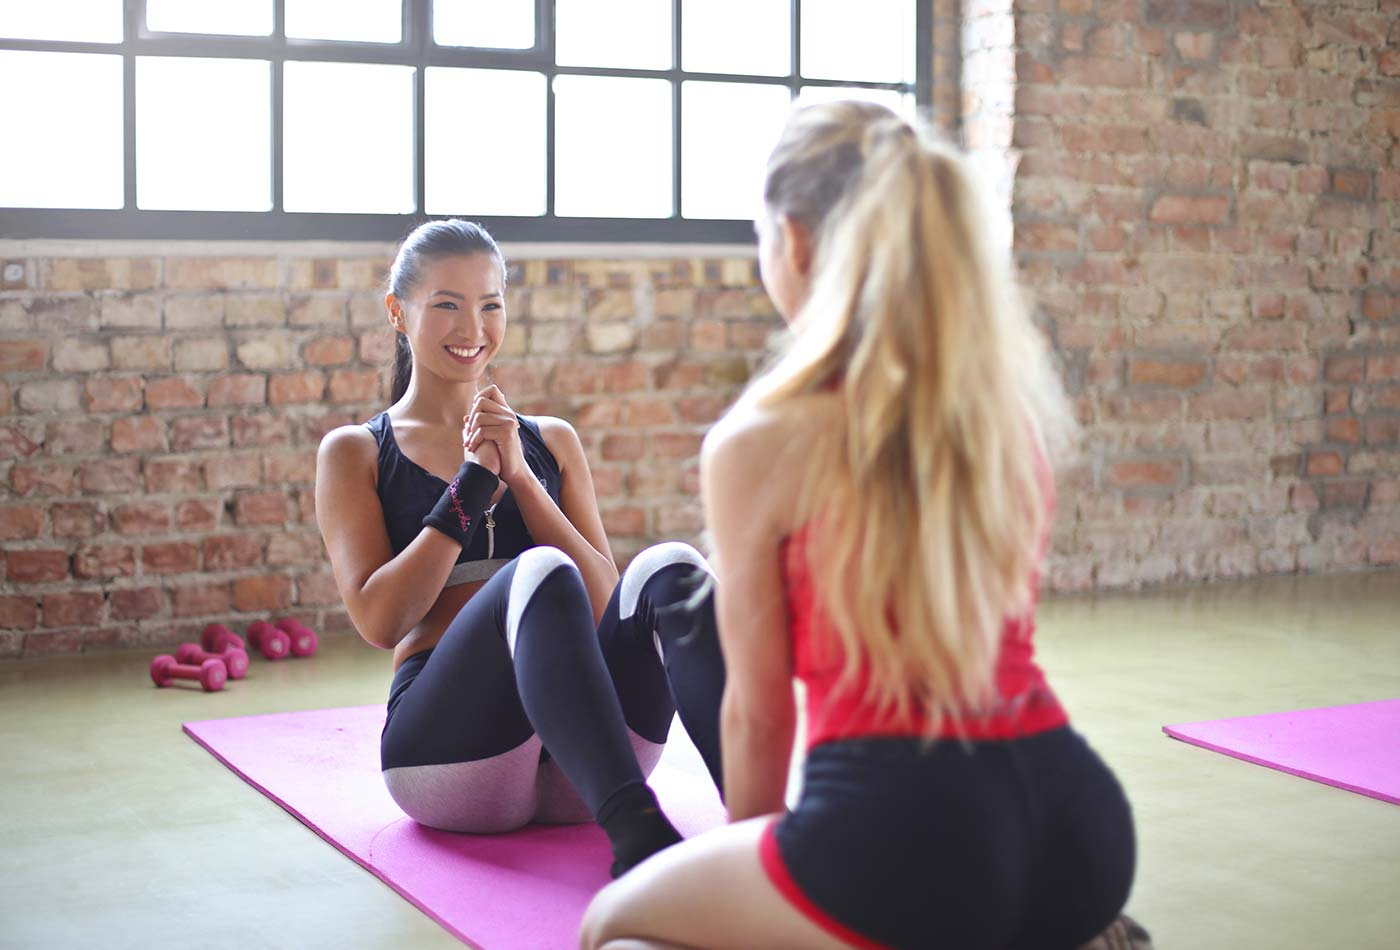 Why Pilates Home Workouts Can Support Our Mental Health Amid The Coronavirus Pandemic